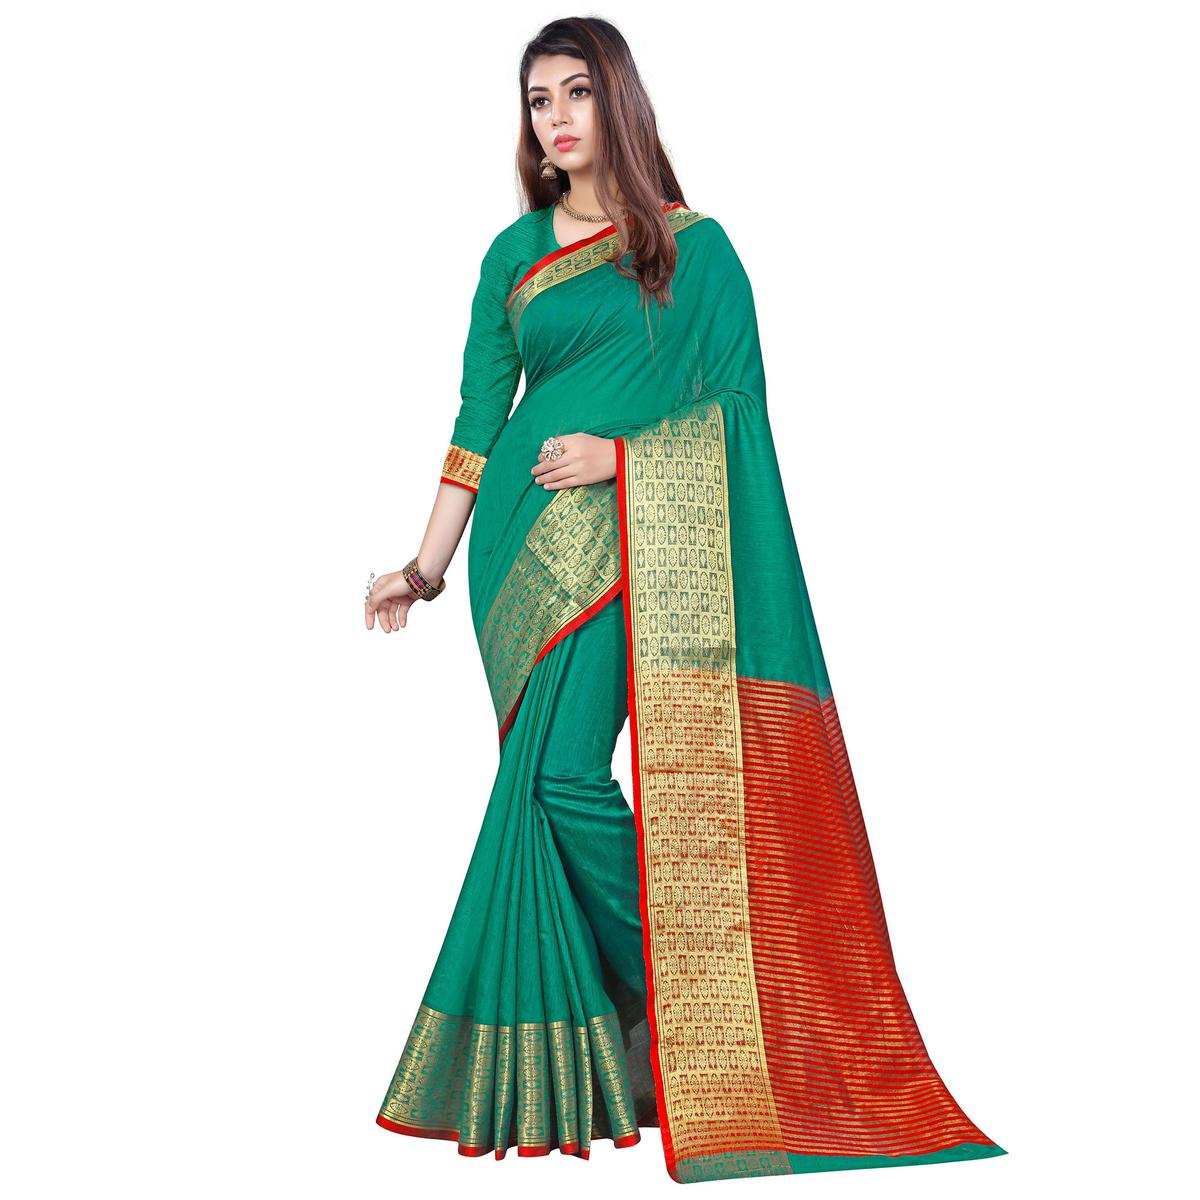 Attractive Turquoise Green Colored Casual Printed Cotton Saree